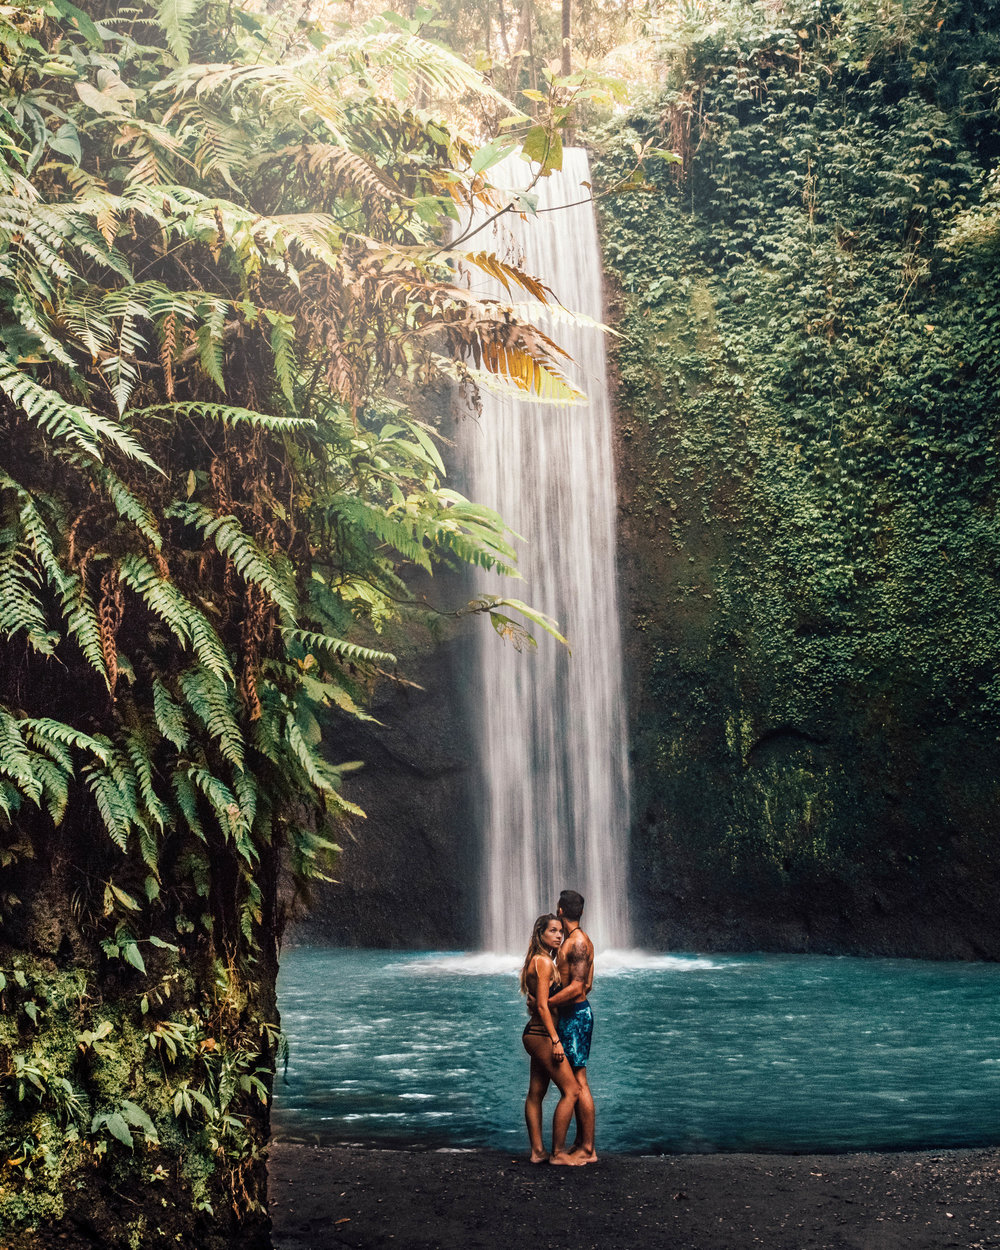 tibumana waterfall beautiful couple travel asia bali indonesia best places to go